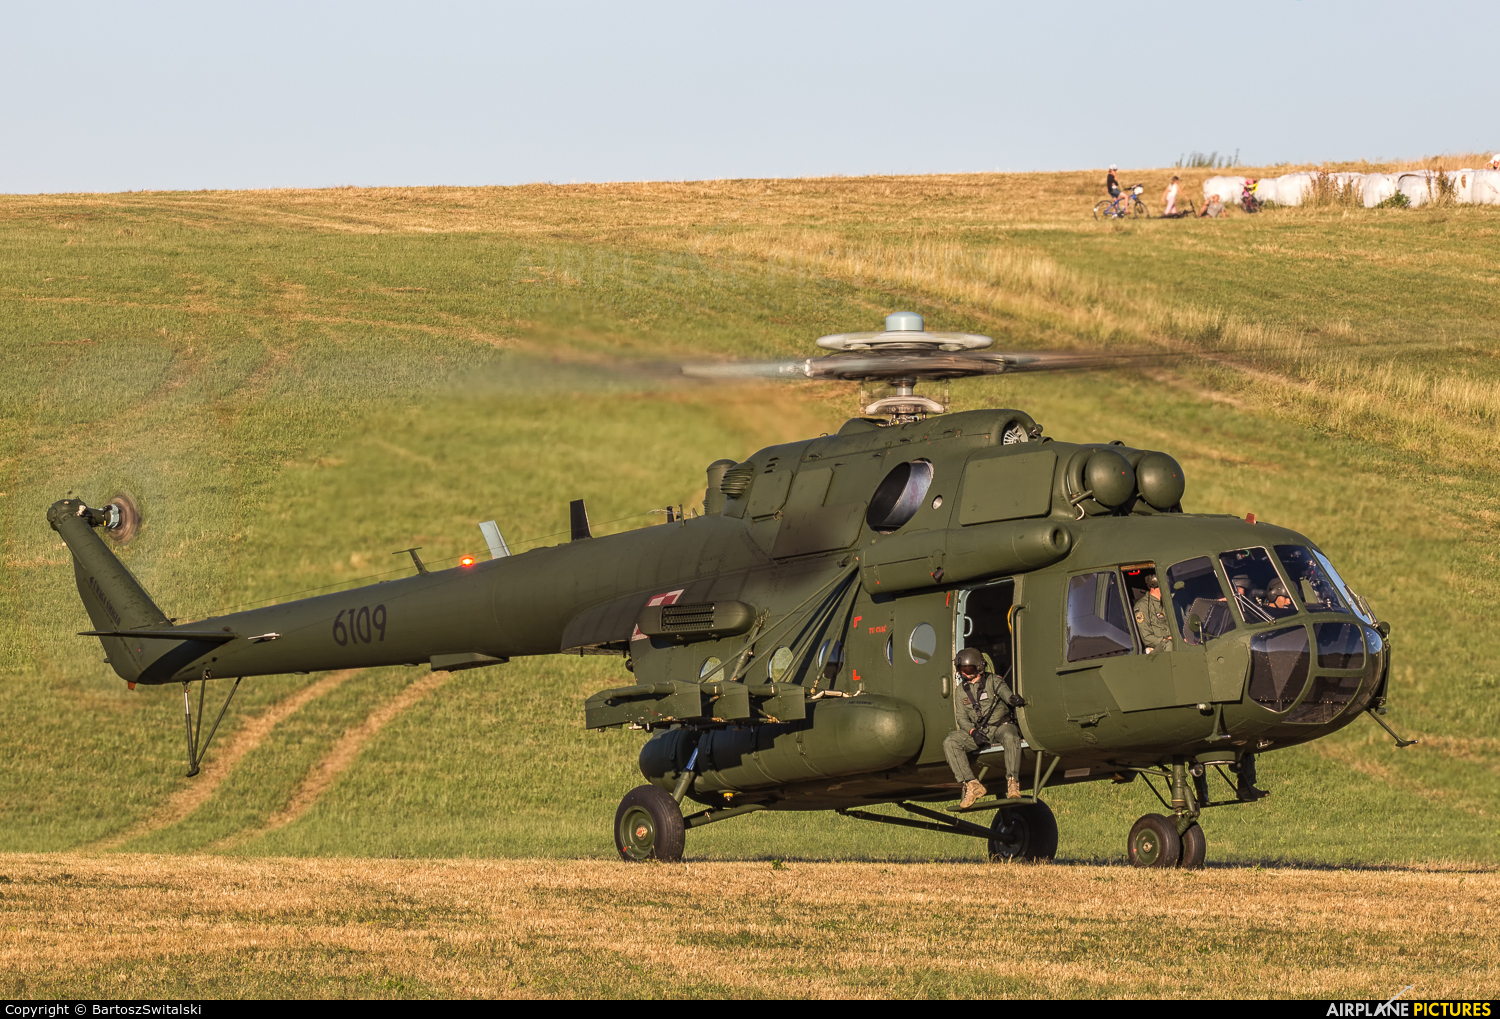 Poland - Air Force 6109 aircraft at Undisclosed location